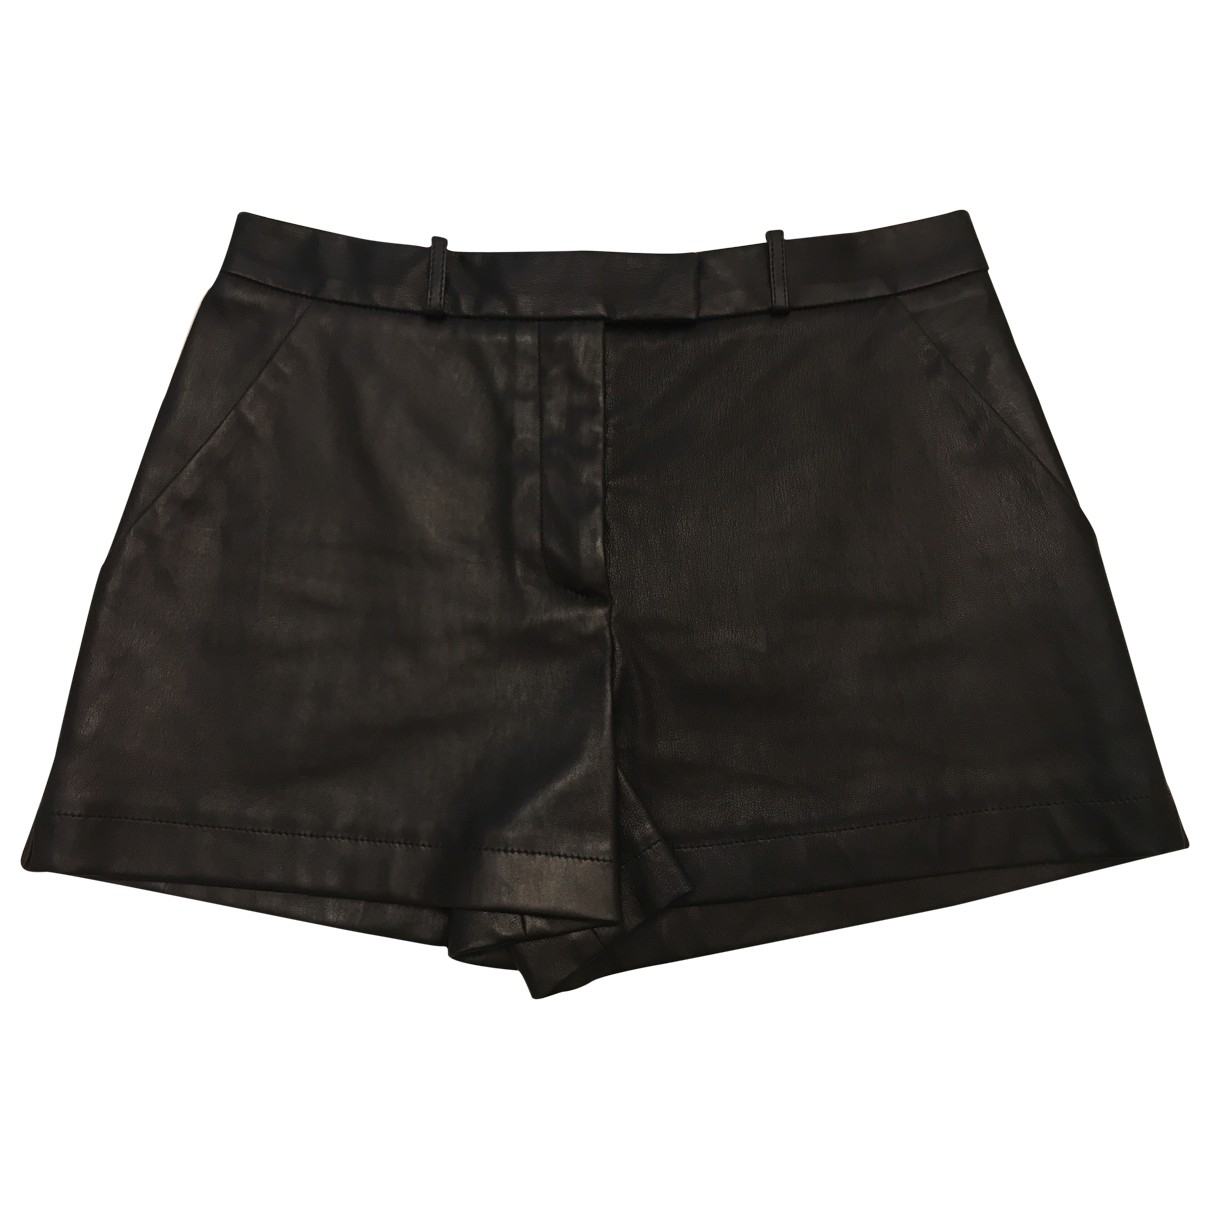 Emilio Pucci N Black Leather Shorts for Women 40 IT